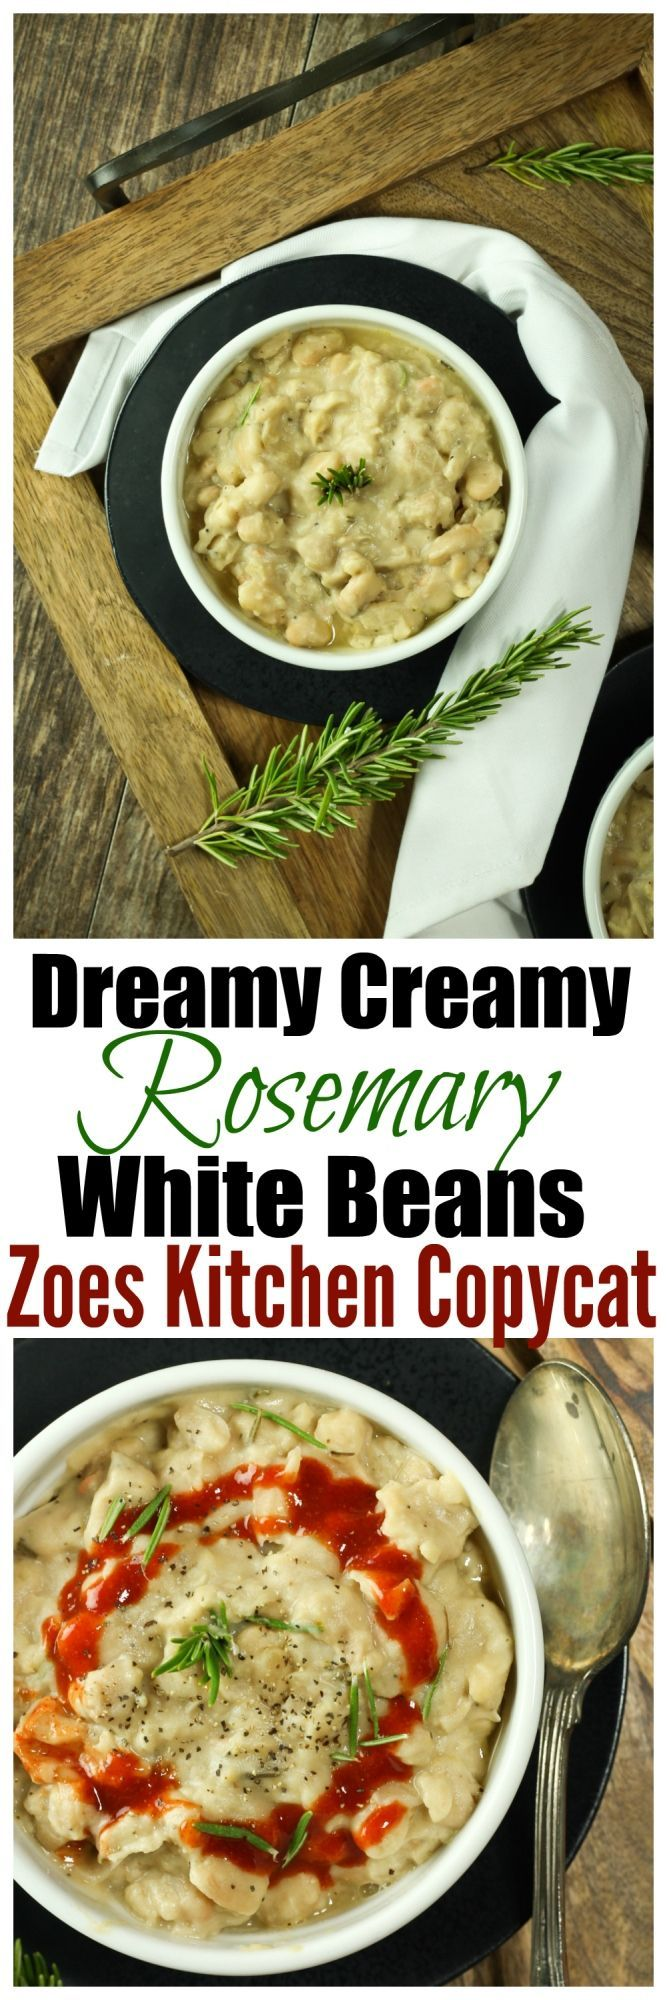 I will decide if the copycat wins in comparison to Zoe's Kitchen in Greenville, NC.